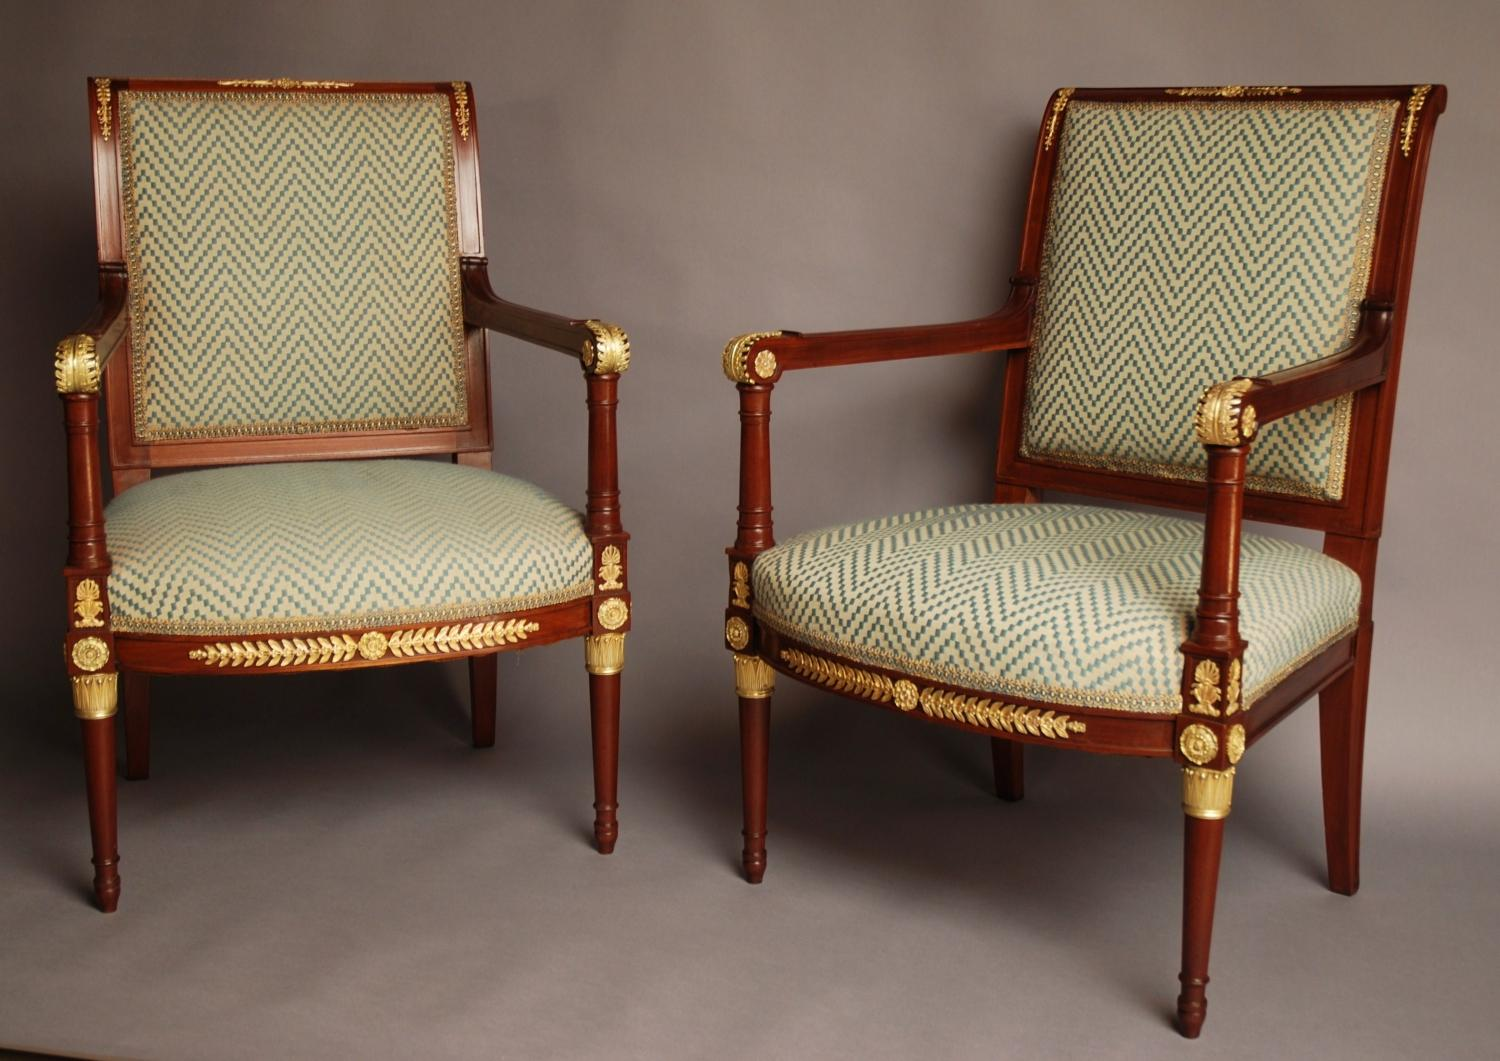 Pair of decorative French early 20thc chairs